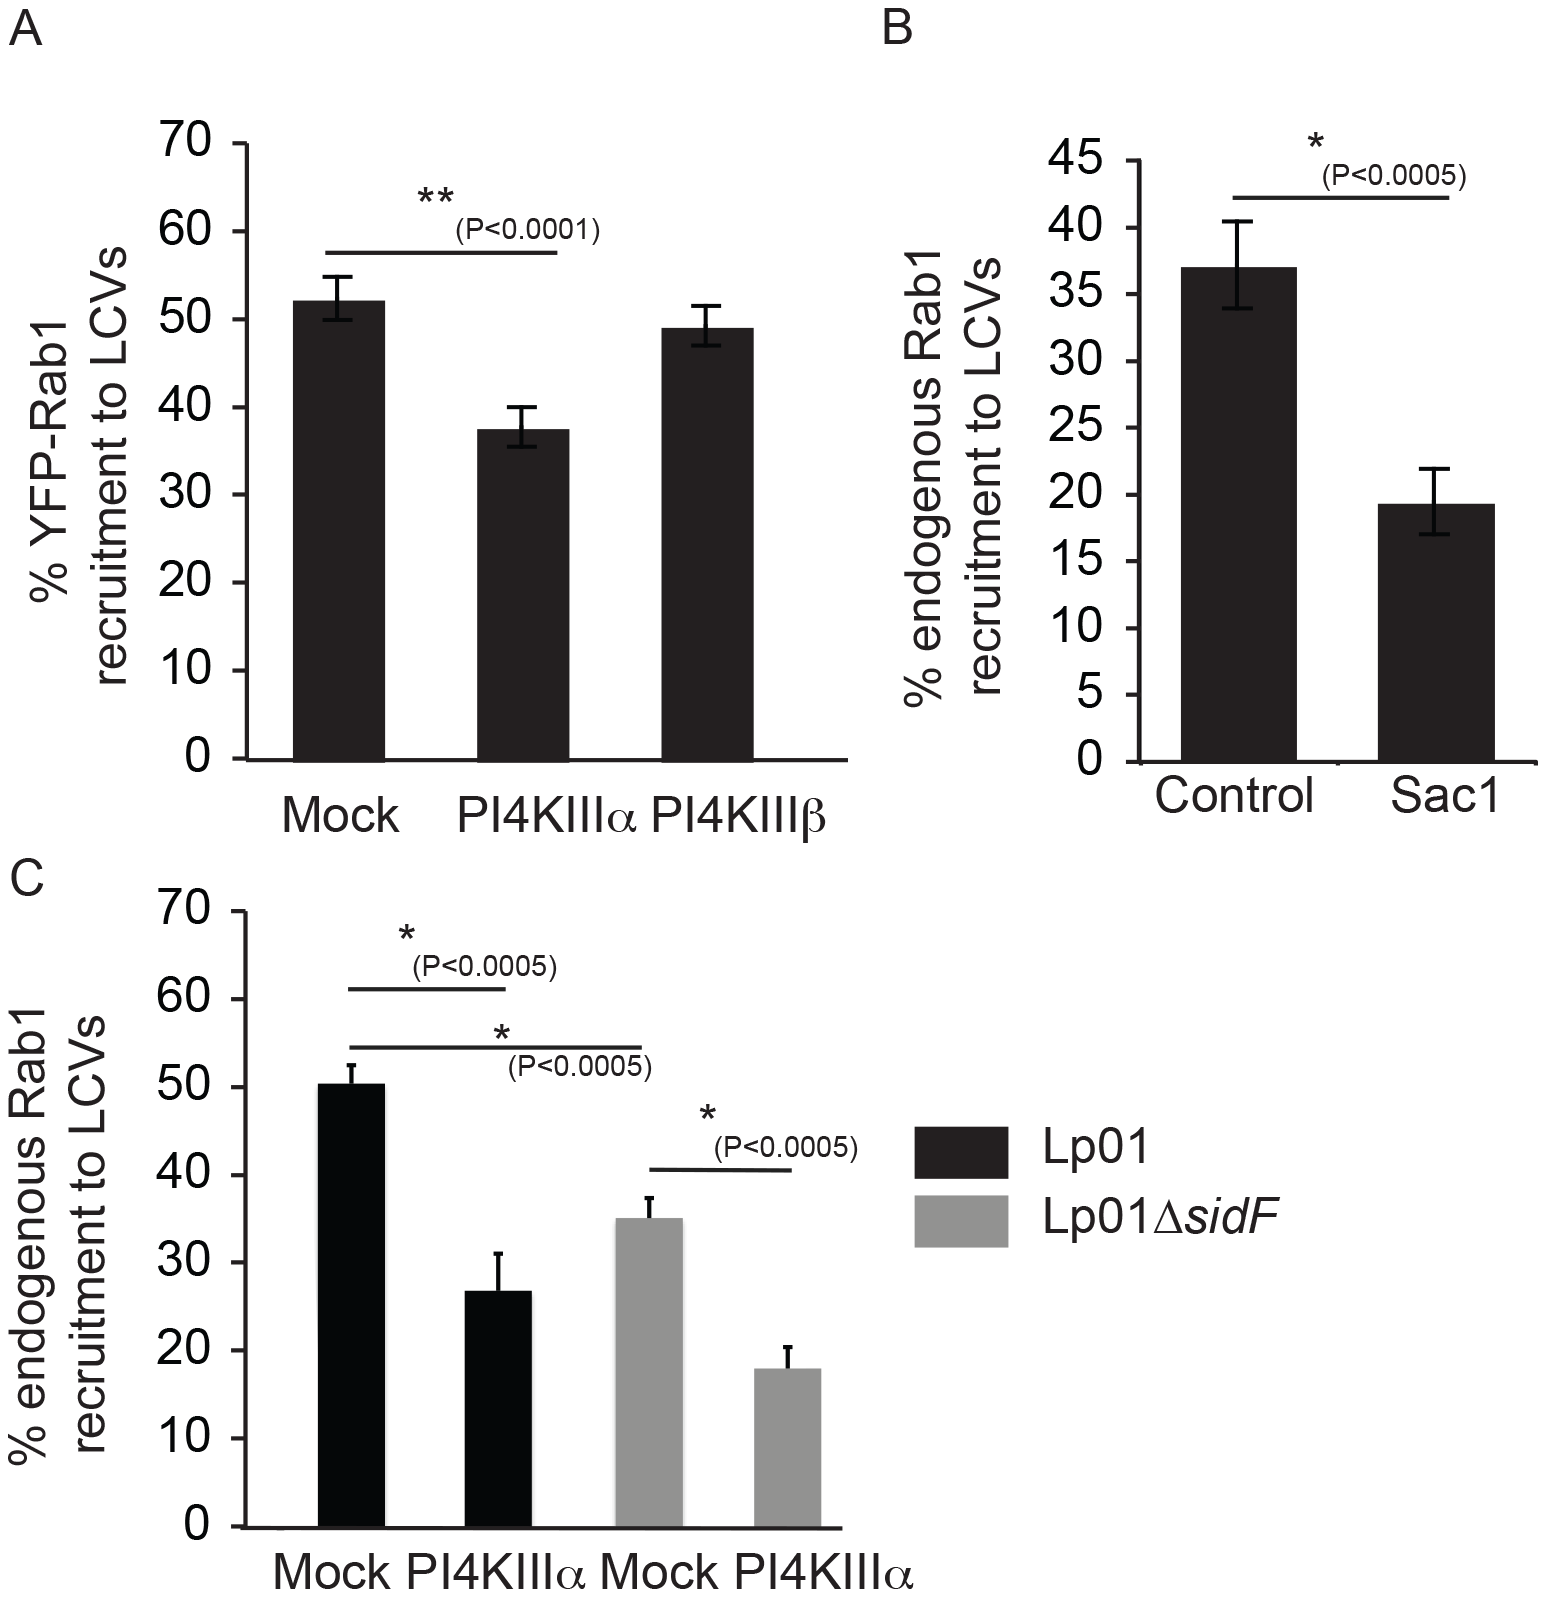 The host kinase PI4KIIIα is important for generation of a pool of PI4P used for DrrA targeting during infection.